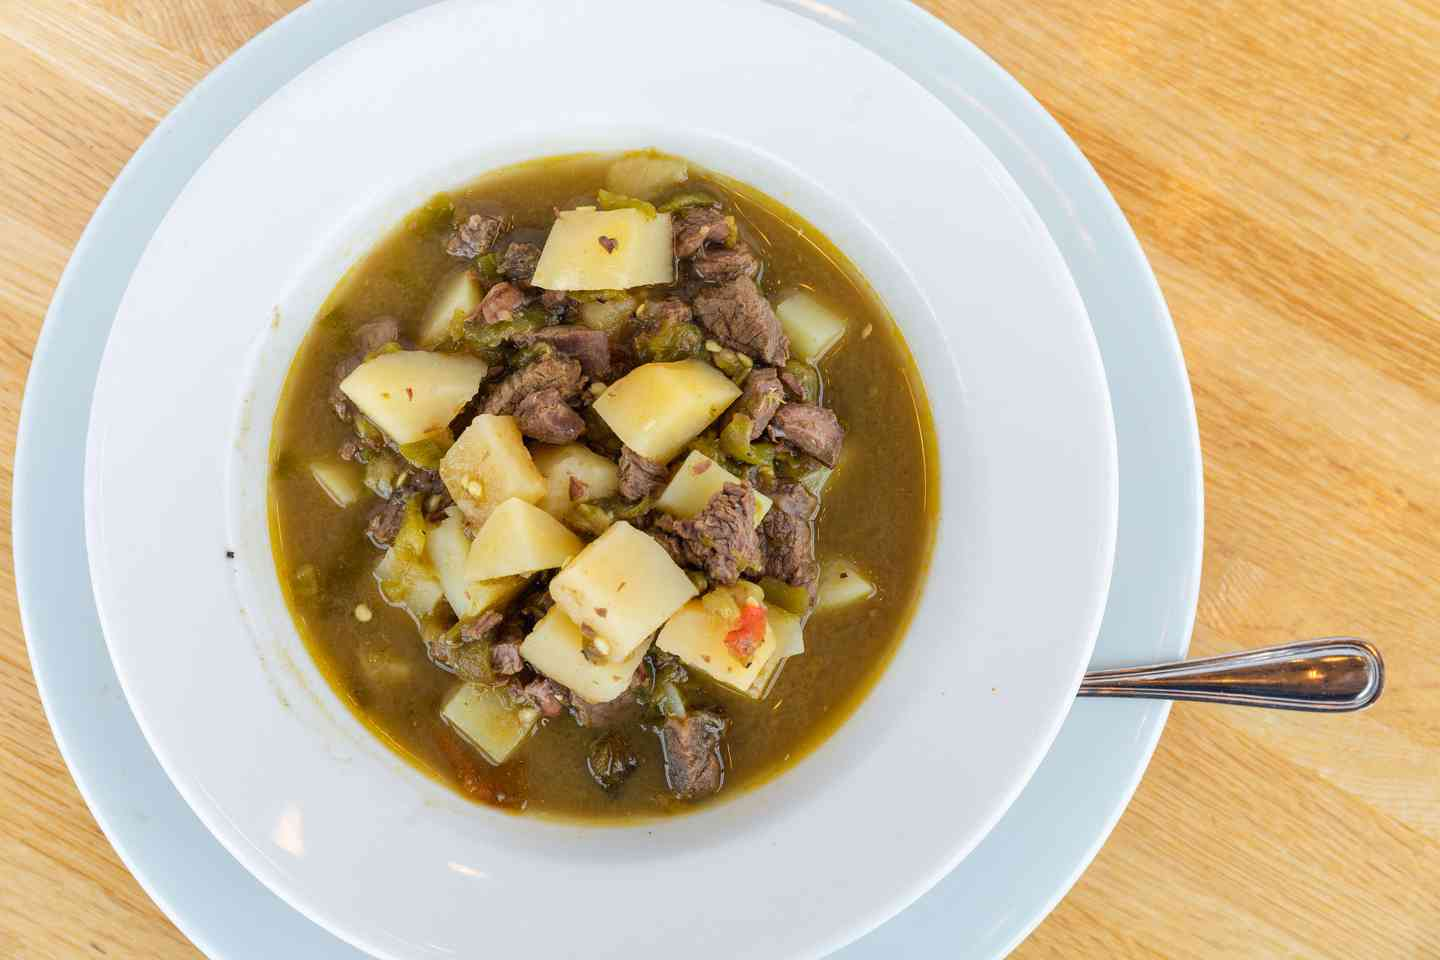 Frank Jr.'s Bowl of Green Chile Stew